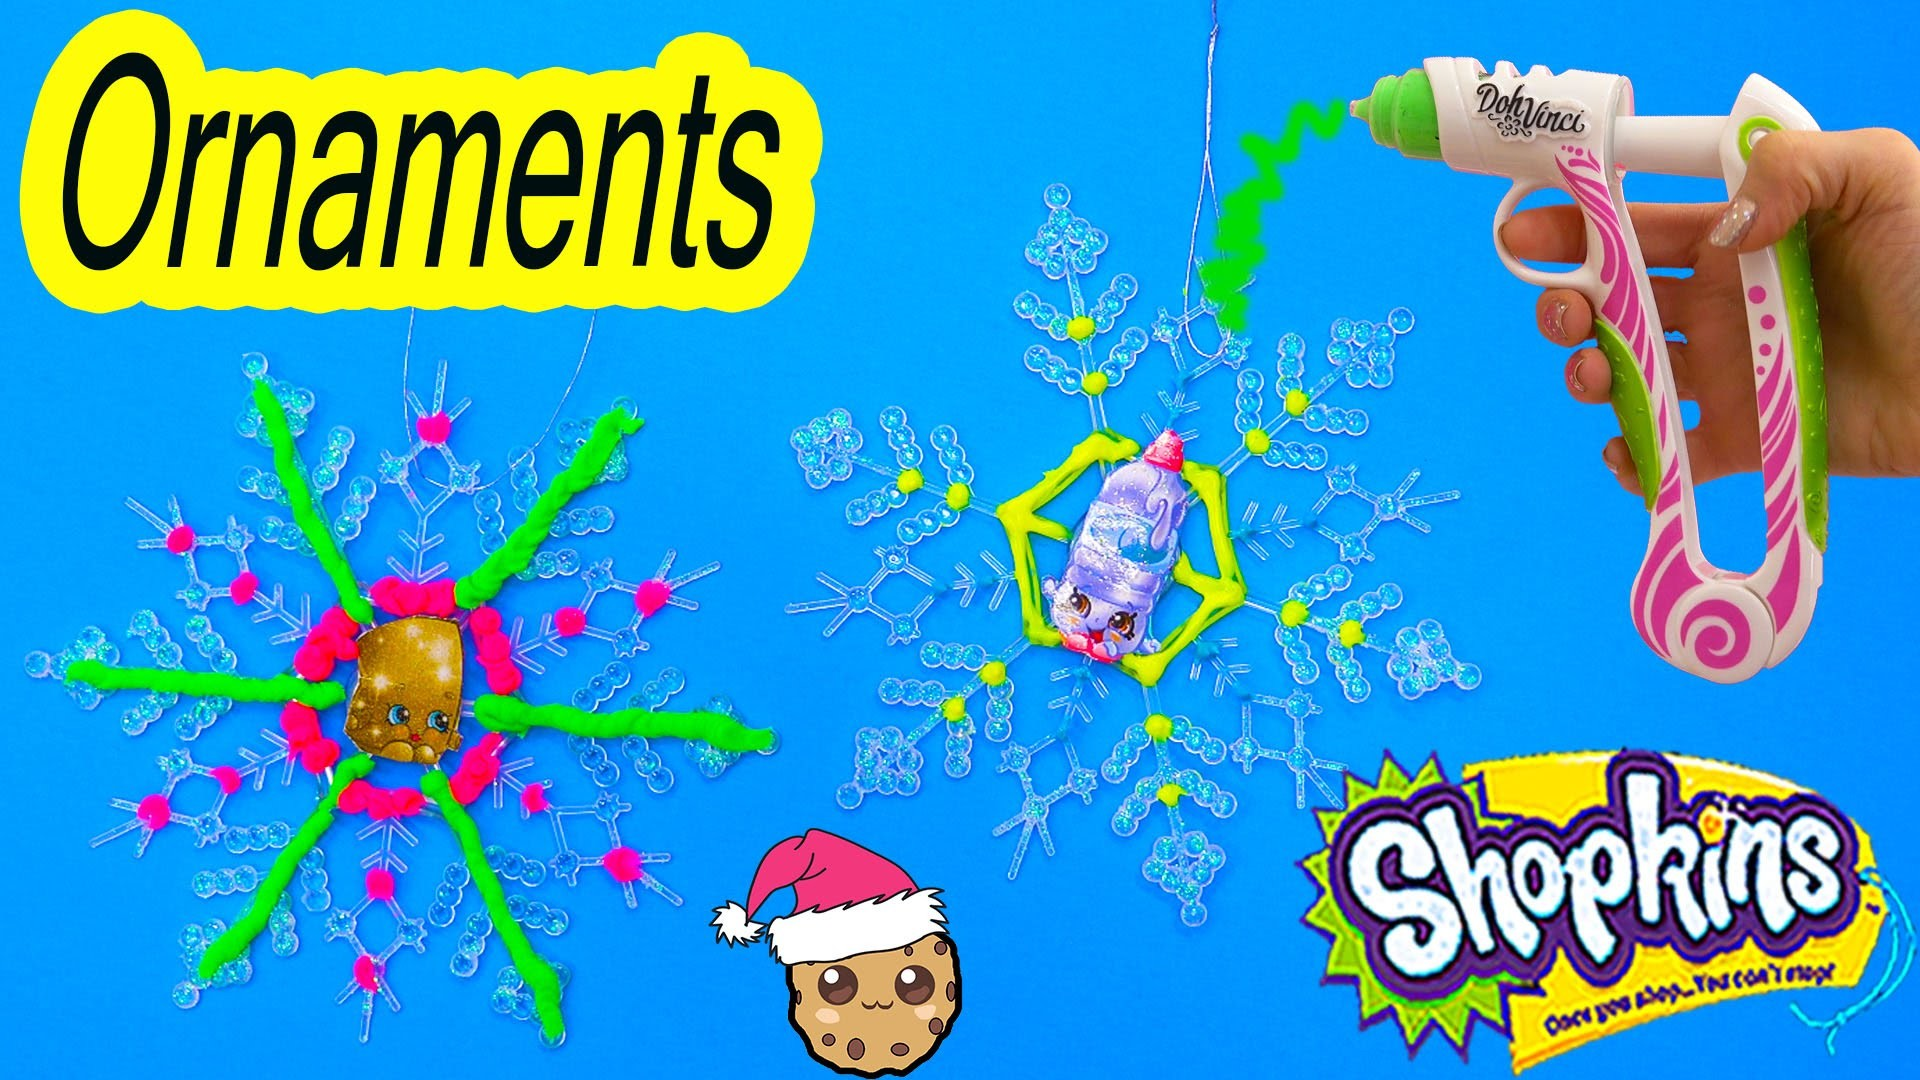 Shopkins DIY Simple Craft Holiday Gifts Snowflakes Ornaments with Dohvinci How To Video